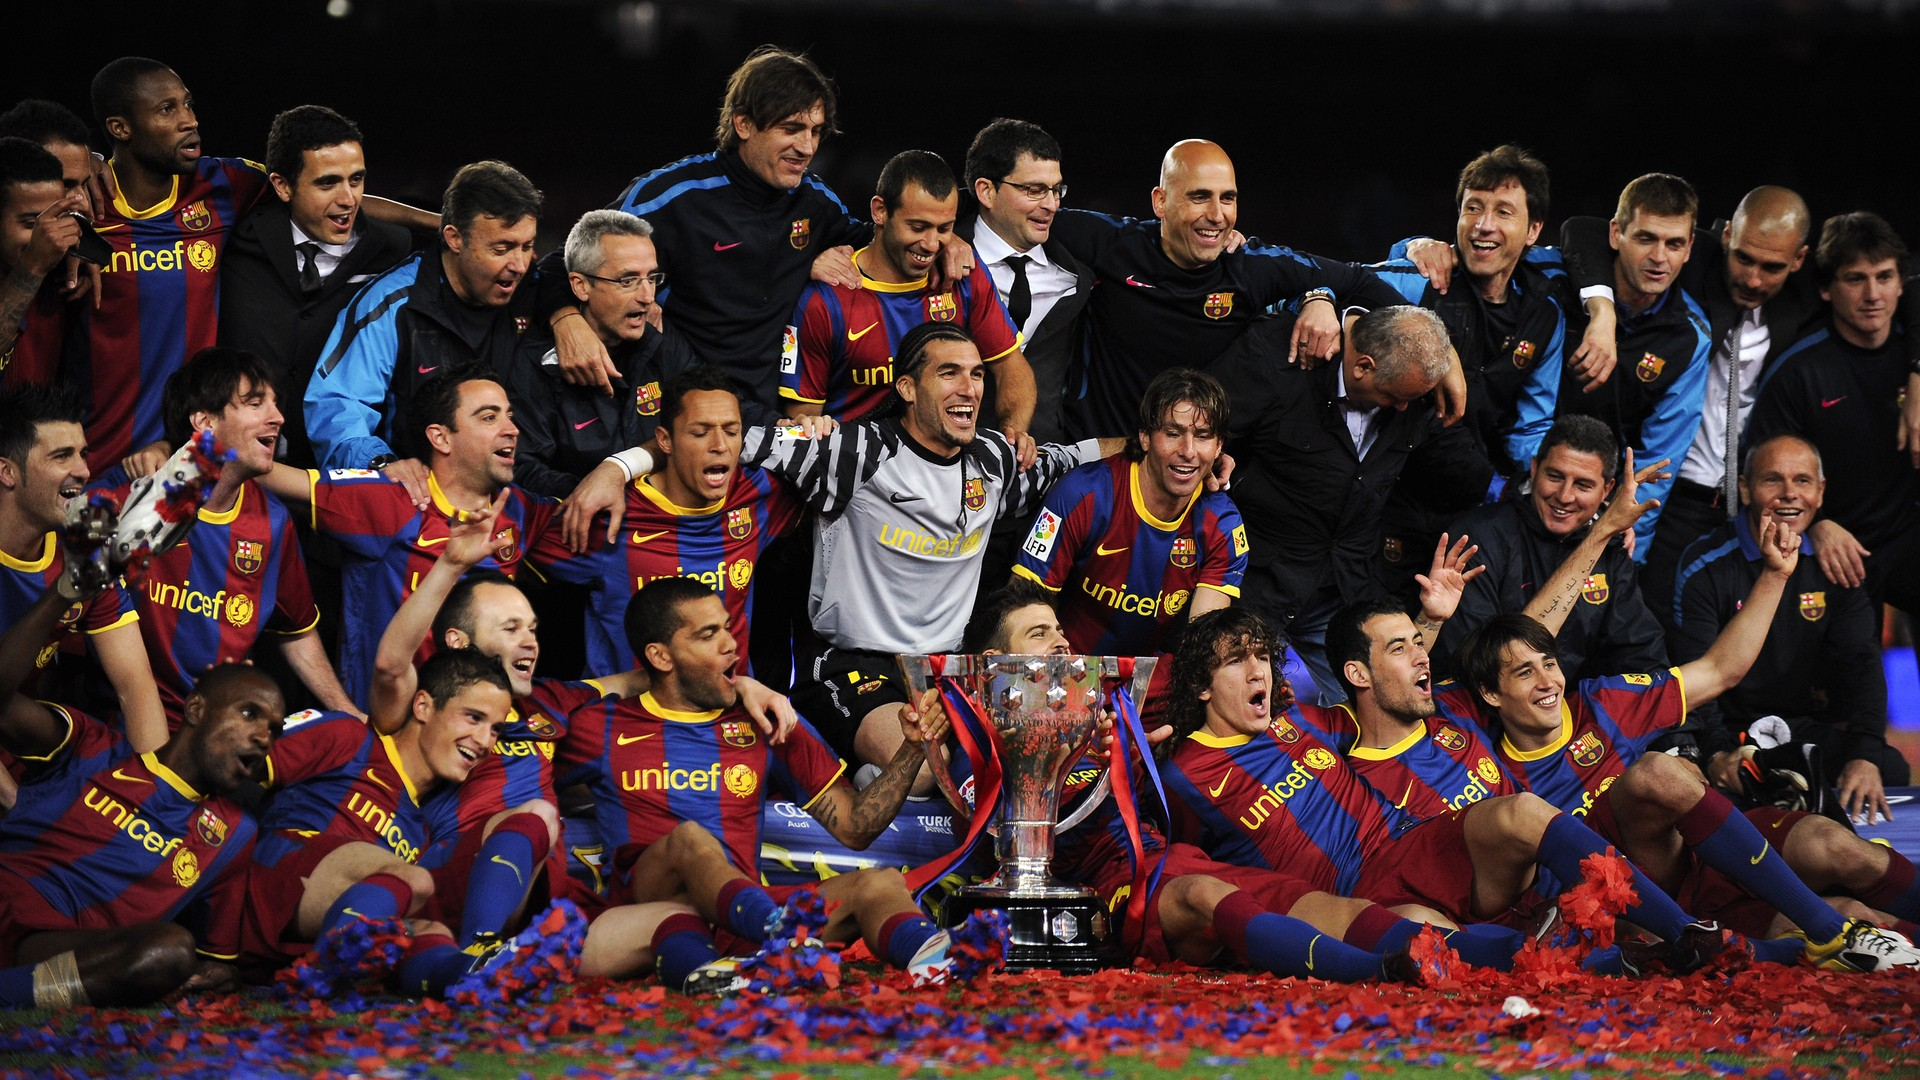 Barcelona Congratulation Hd Wallpaper